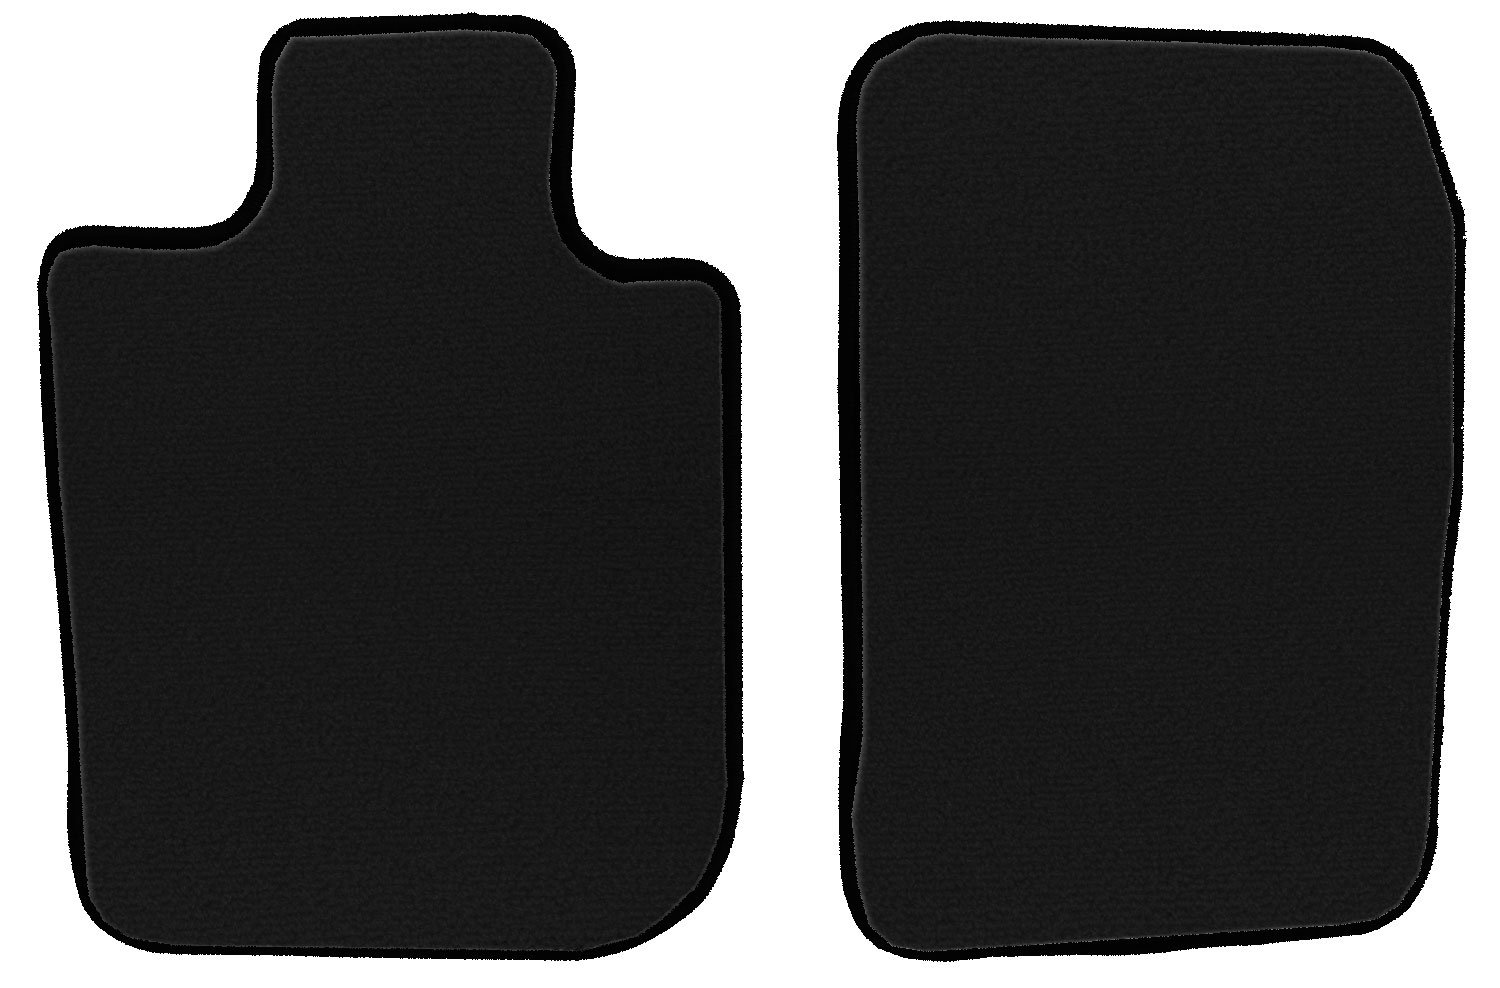 GGBAILEY D2546A-F1A-BK-LP Custom Fit Car Mats for 2011 2012 2013 Infiniti M Series Black Loop Driver /& Passenger Floor